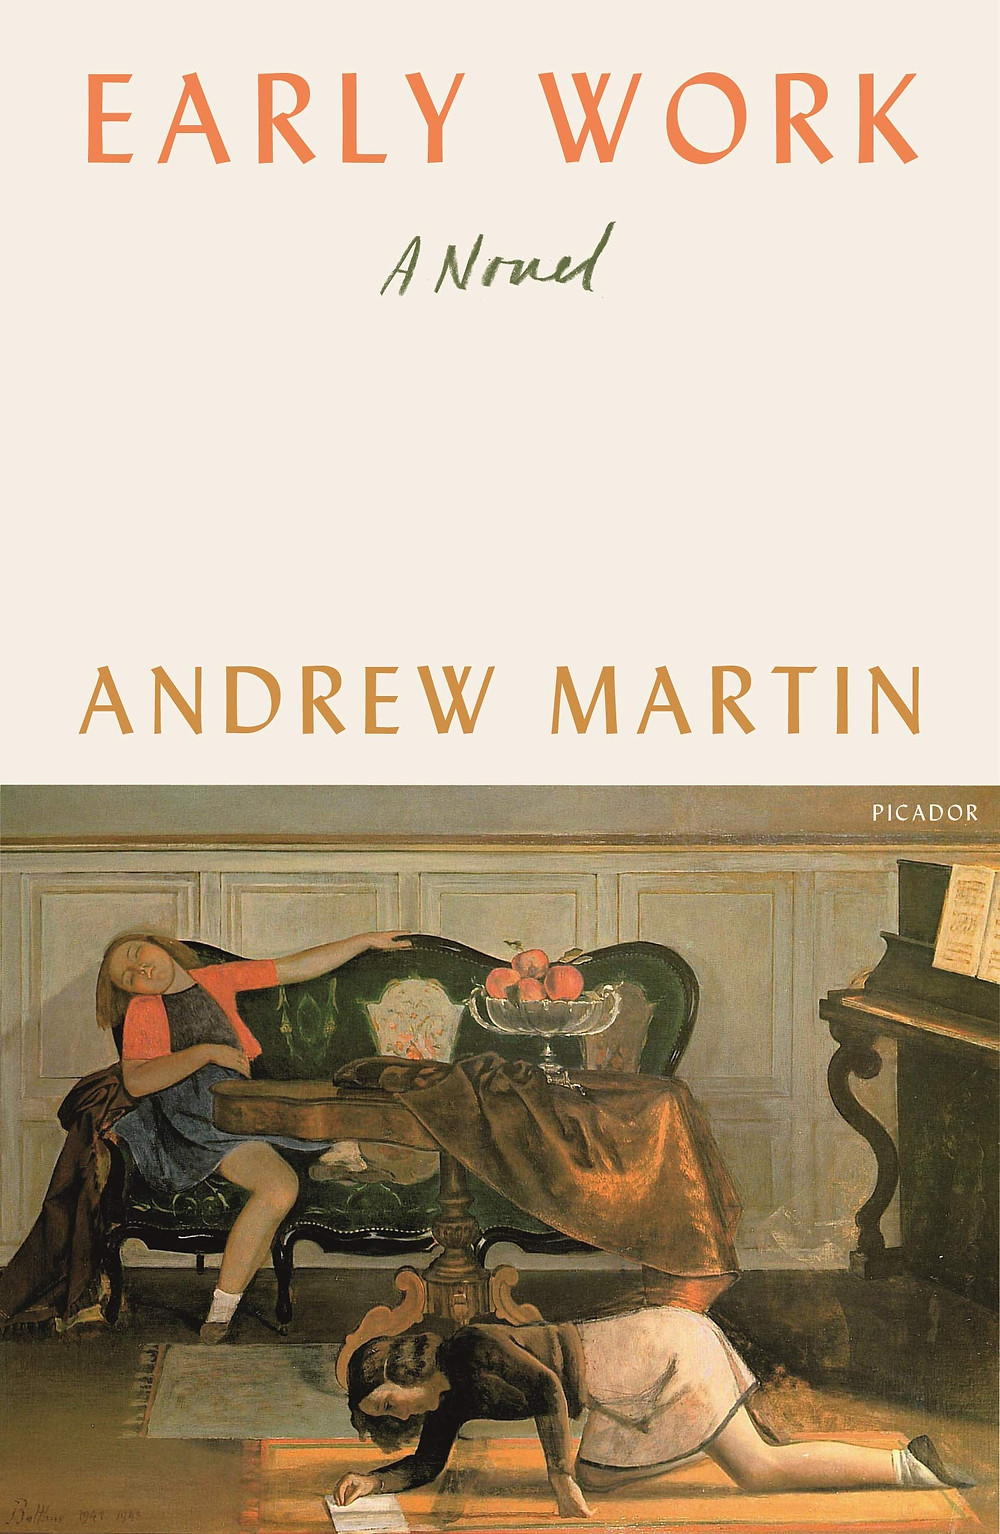 Early Work by Andrew Martin : the book slut book reviews